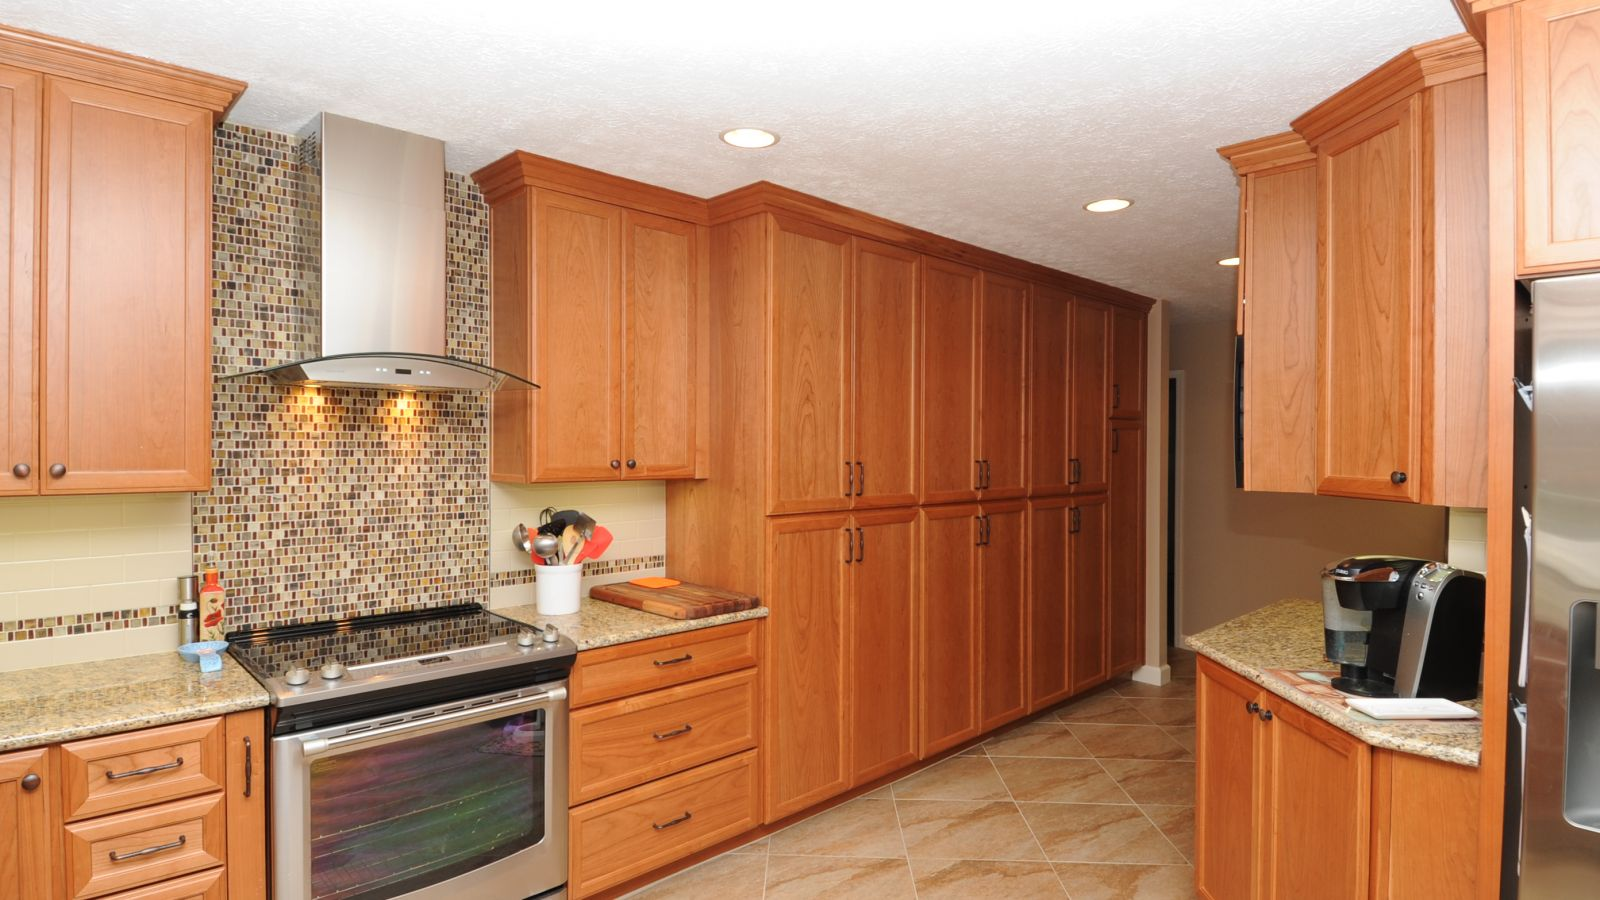 Our Cabinet Families Frugal Kitchens Amp Cabinets